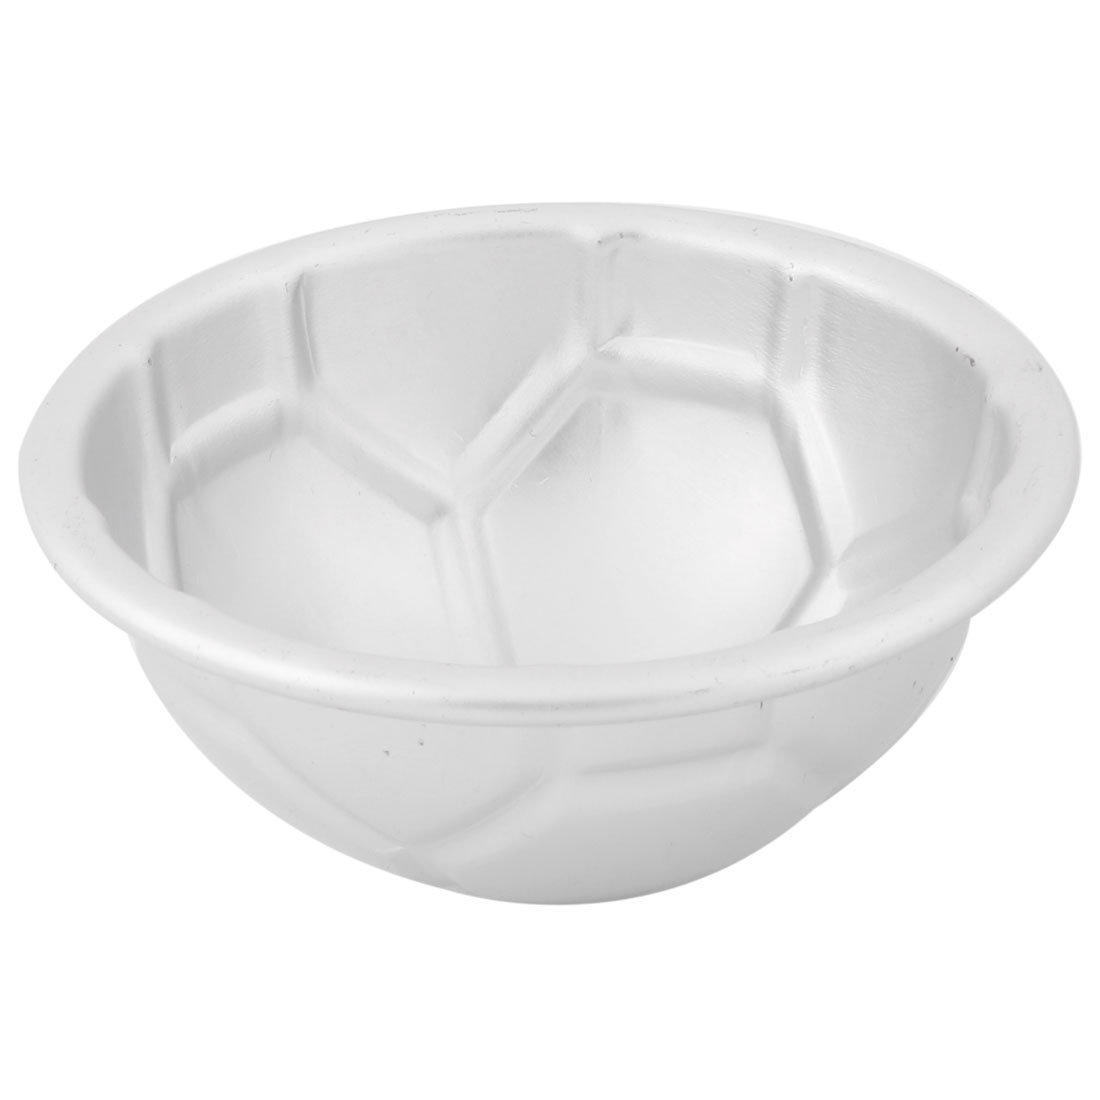 Kitchen Stainless Steel Football Shaped Cake Egg Pudding Mold Silver Tone